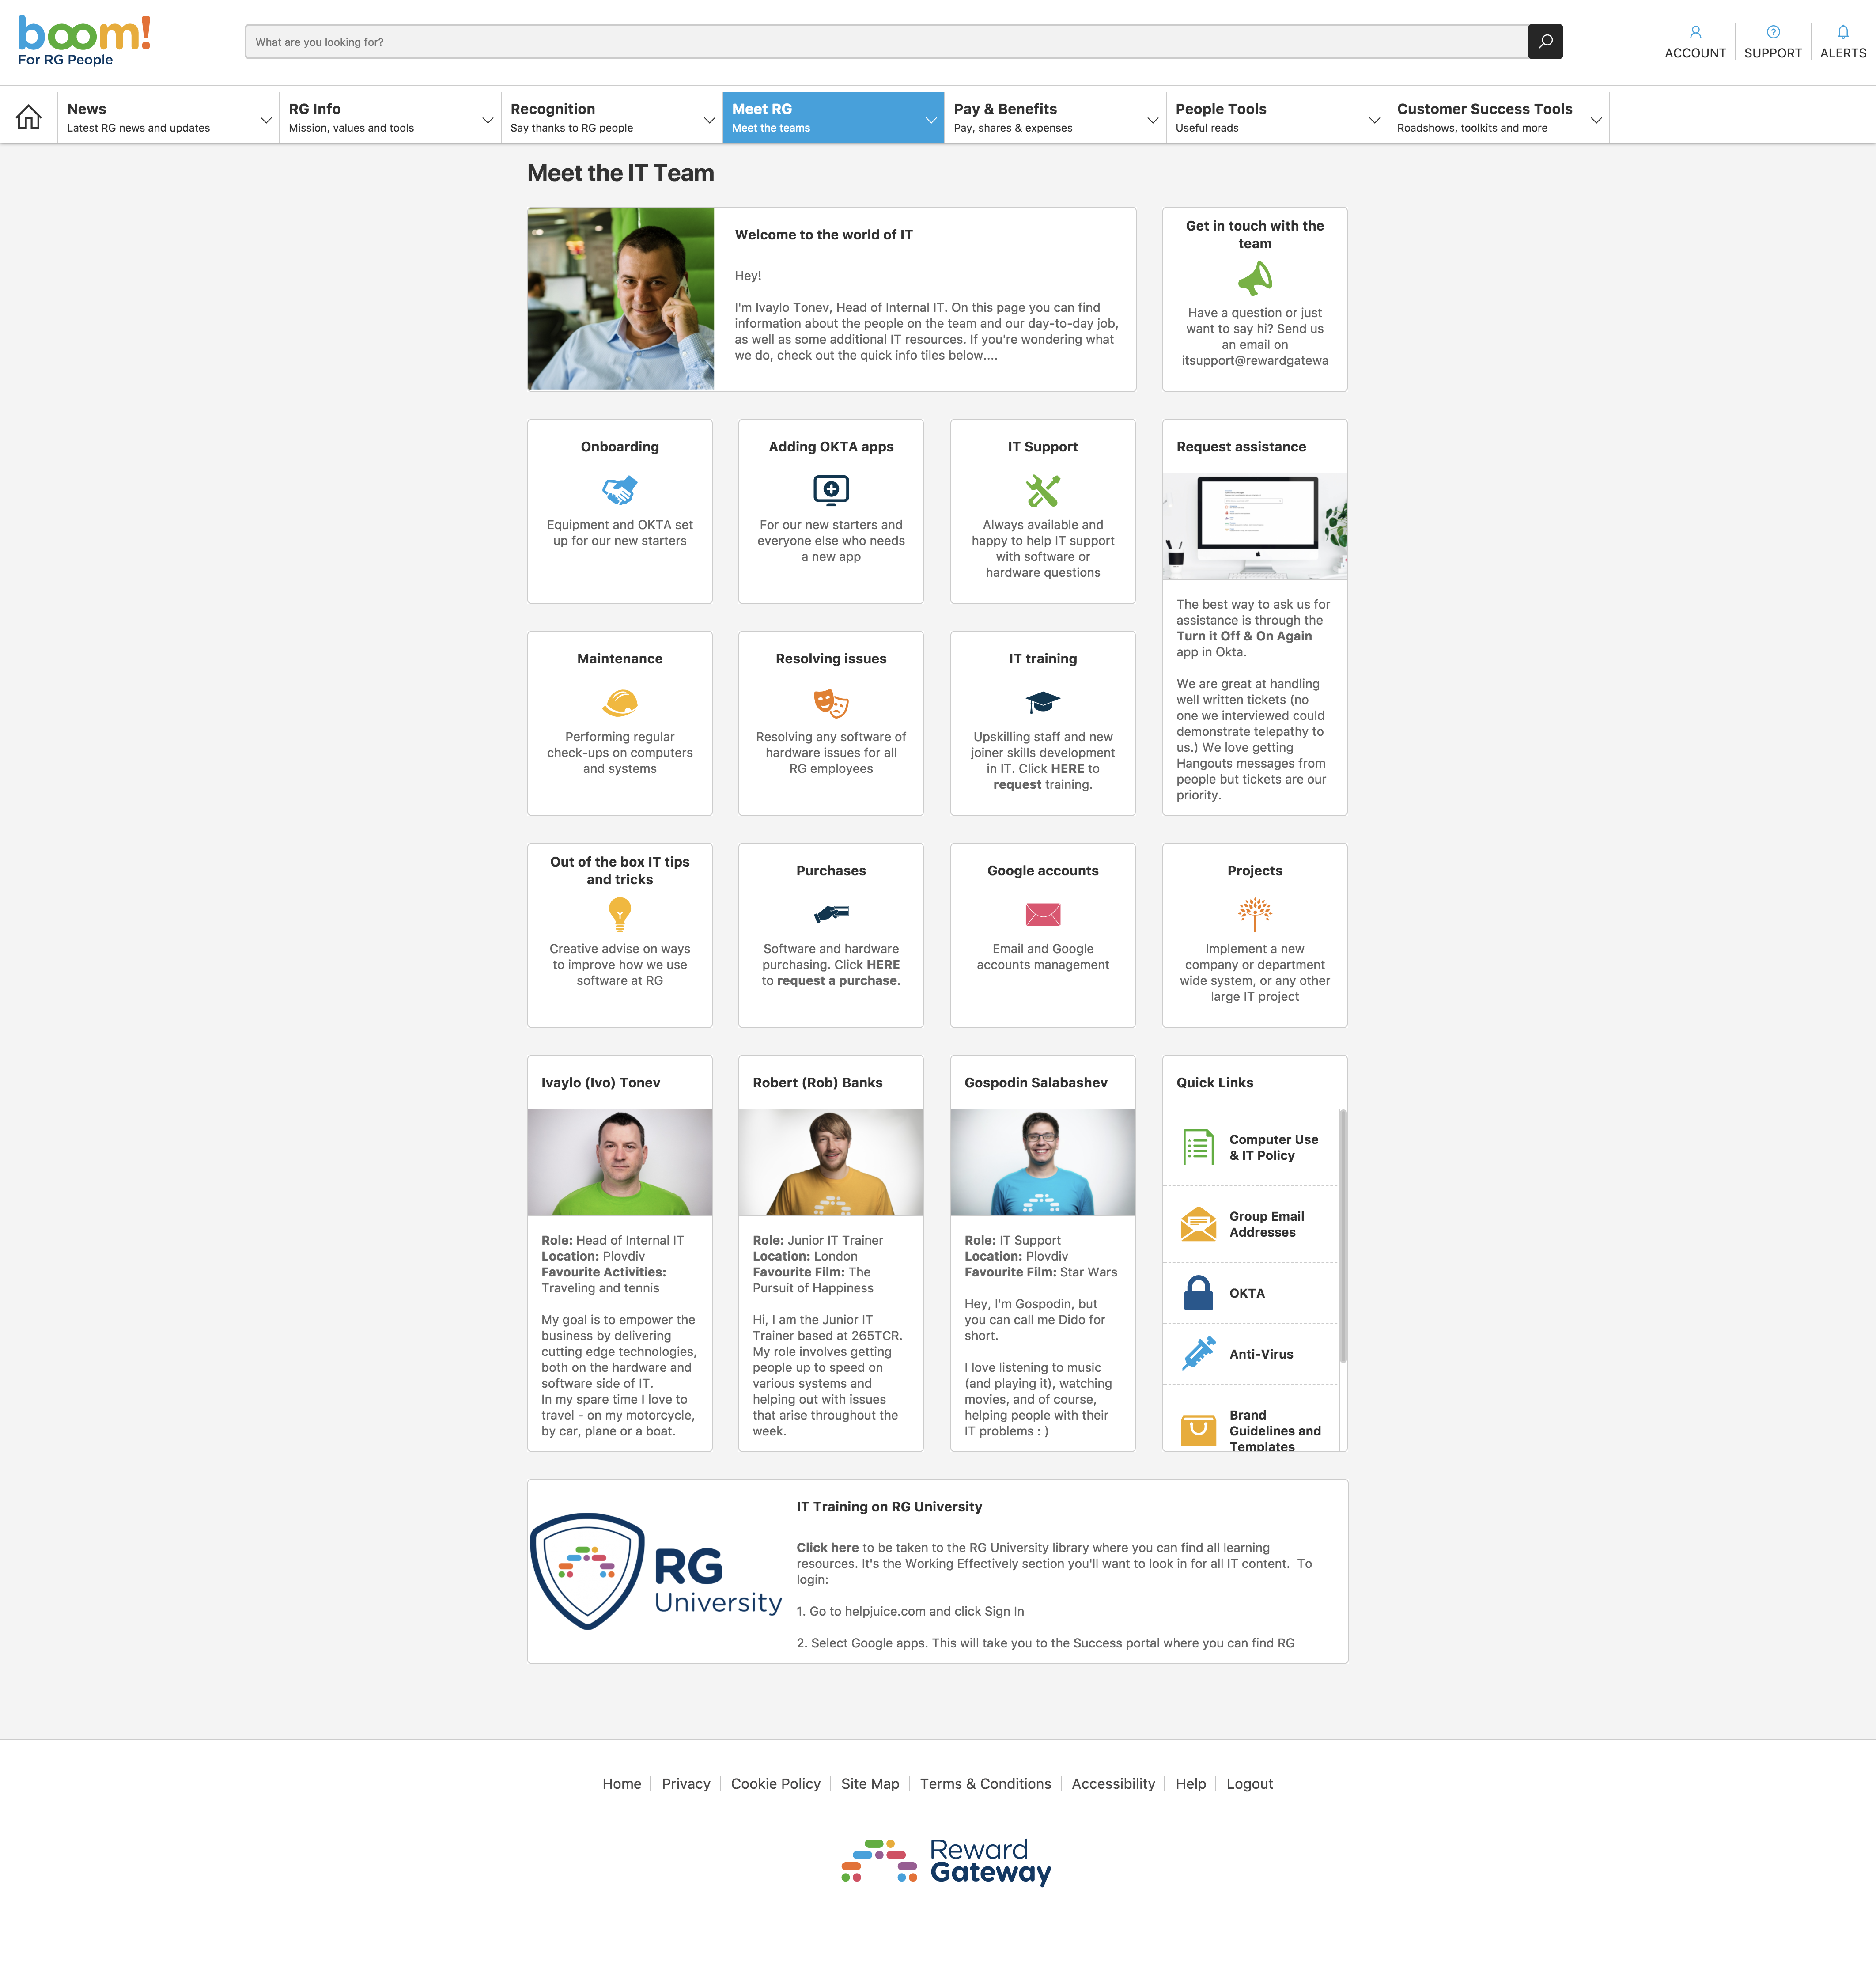 screencapture-boomforrgpeople-rewardgateway-co-uk-SmartHub-it-1513878029271.png